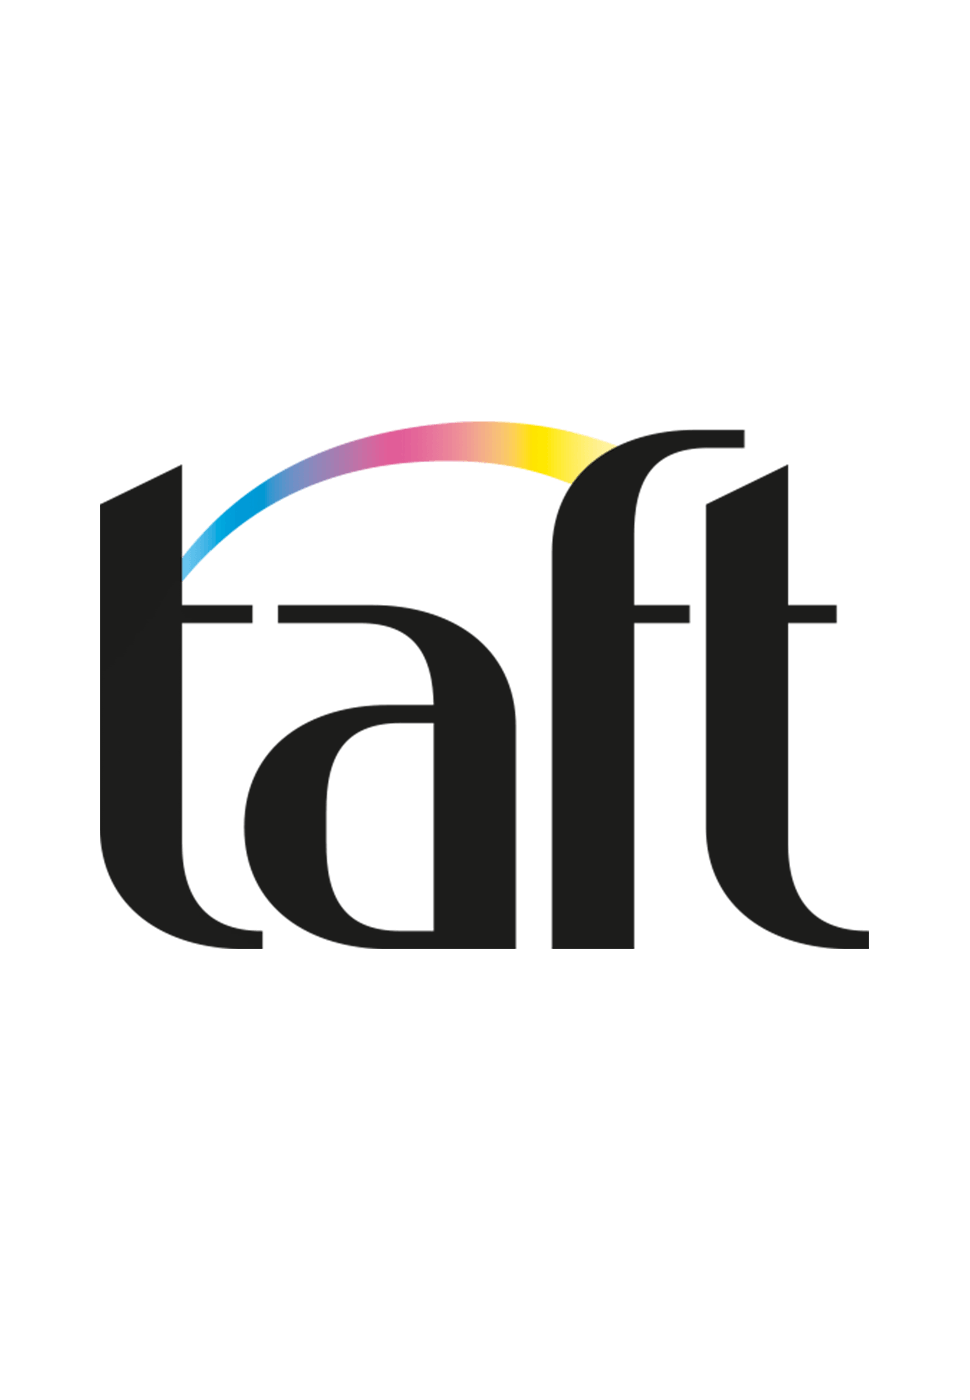 taft_ru_home_logos_black_970x1400